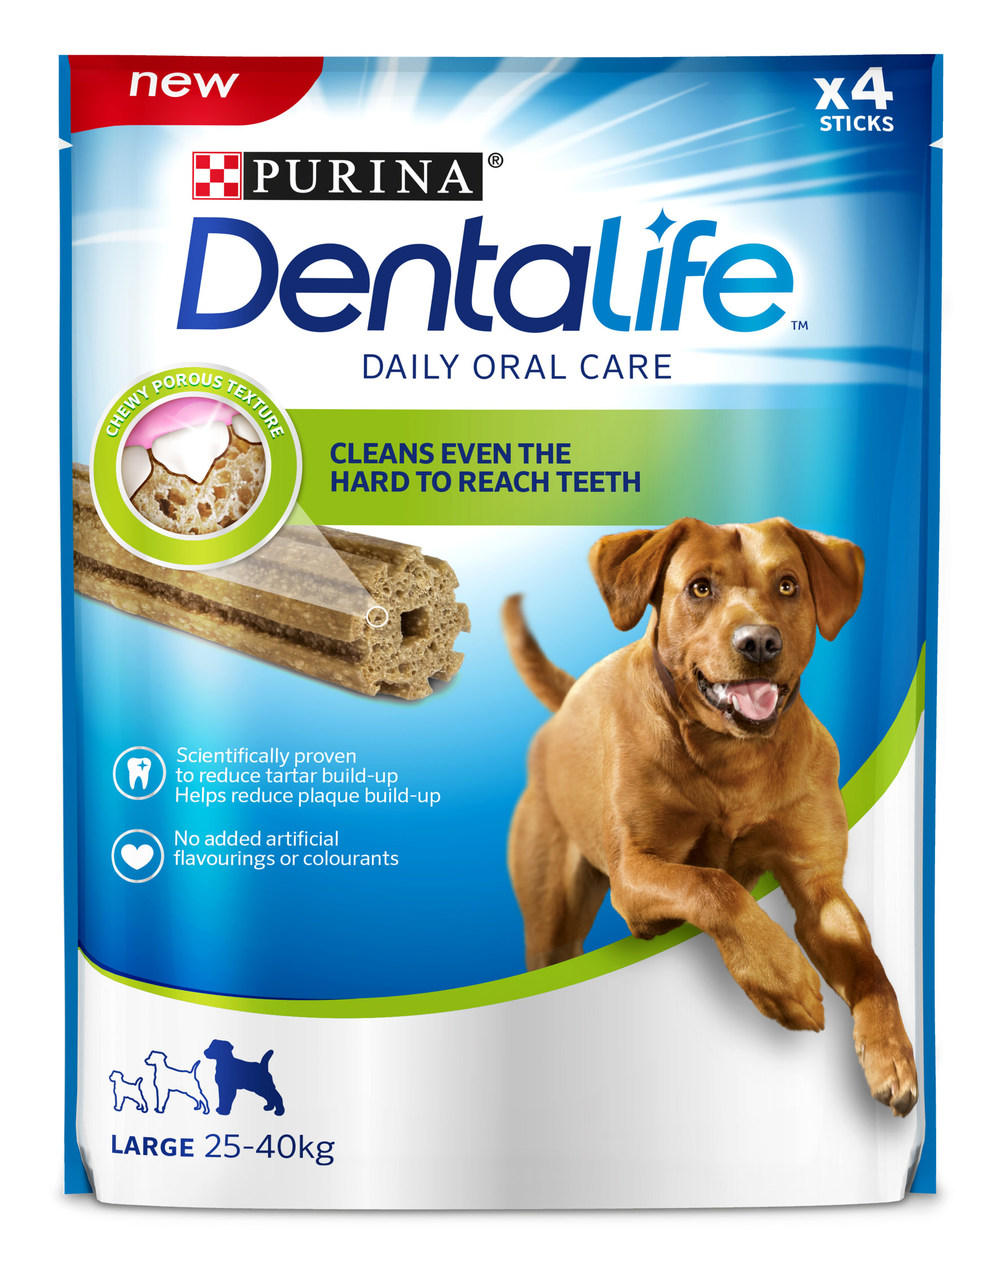 Purina Dentalife campaign